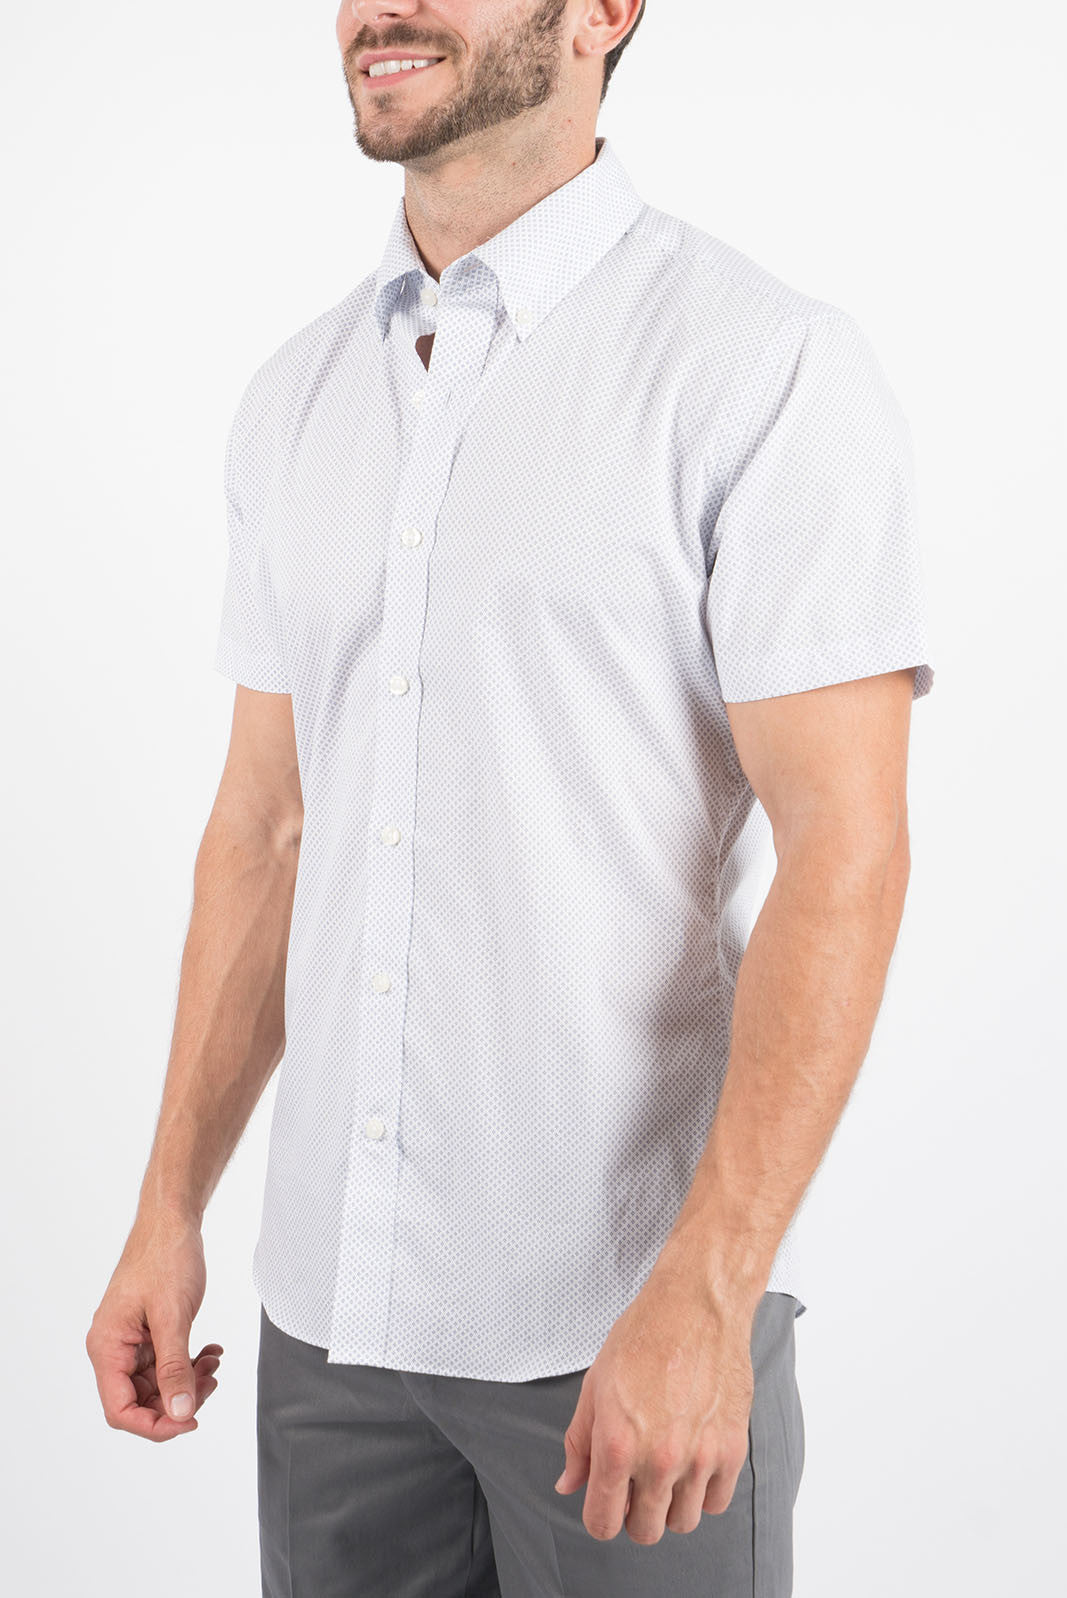 c9446d439 Shirts | White Diamond Dot: Button-Down, Short Sleeve Button-Up | Stantt